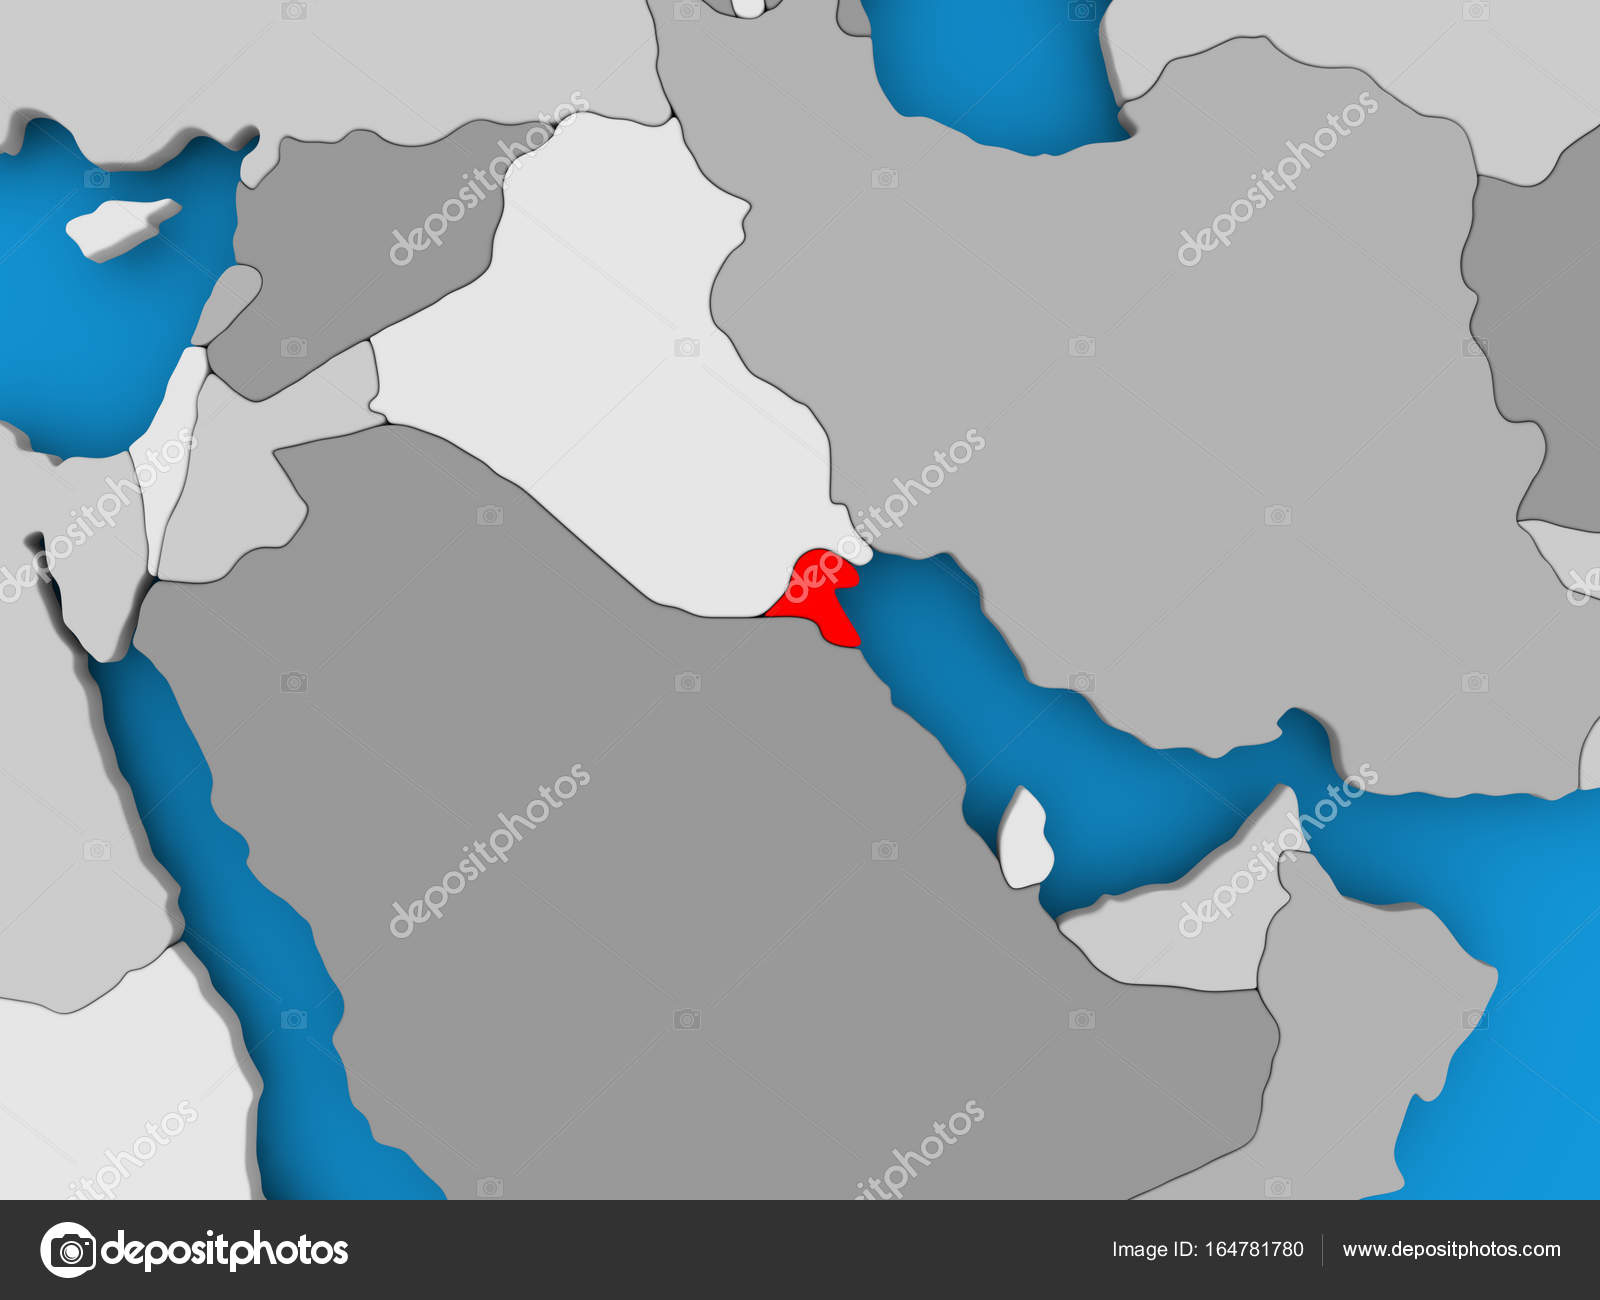 Kuwait Political Map.Map Of Kuwait Stock Photo C Tom Griger 164781780